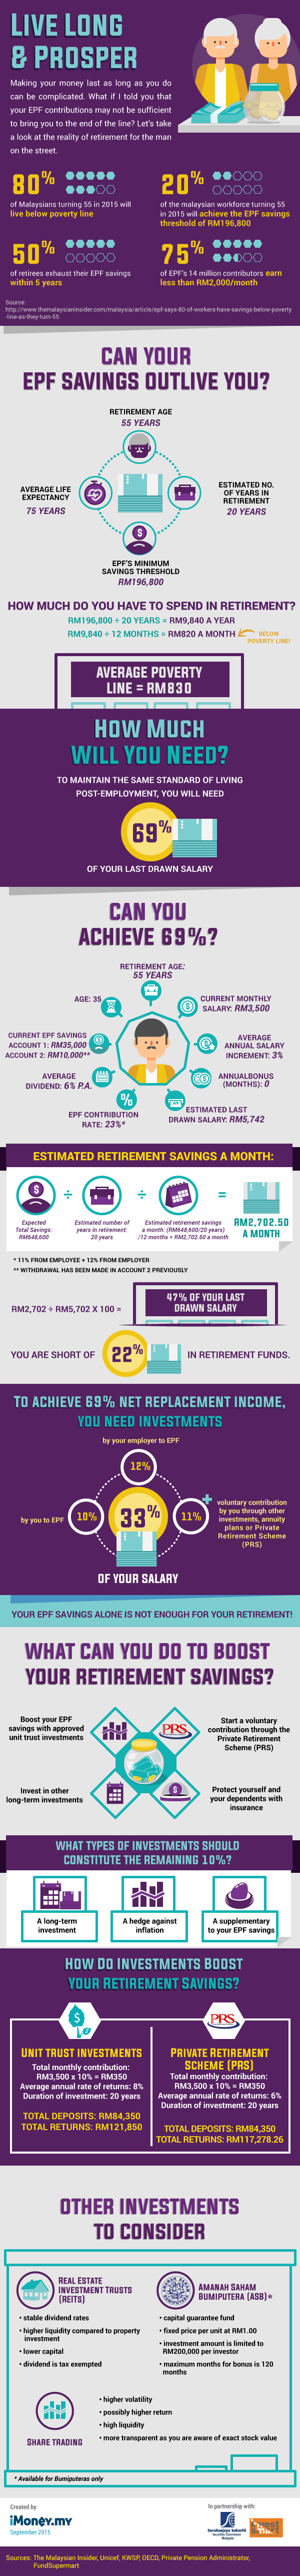 EPF for retirement